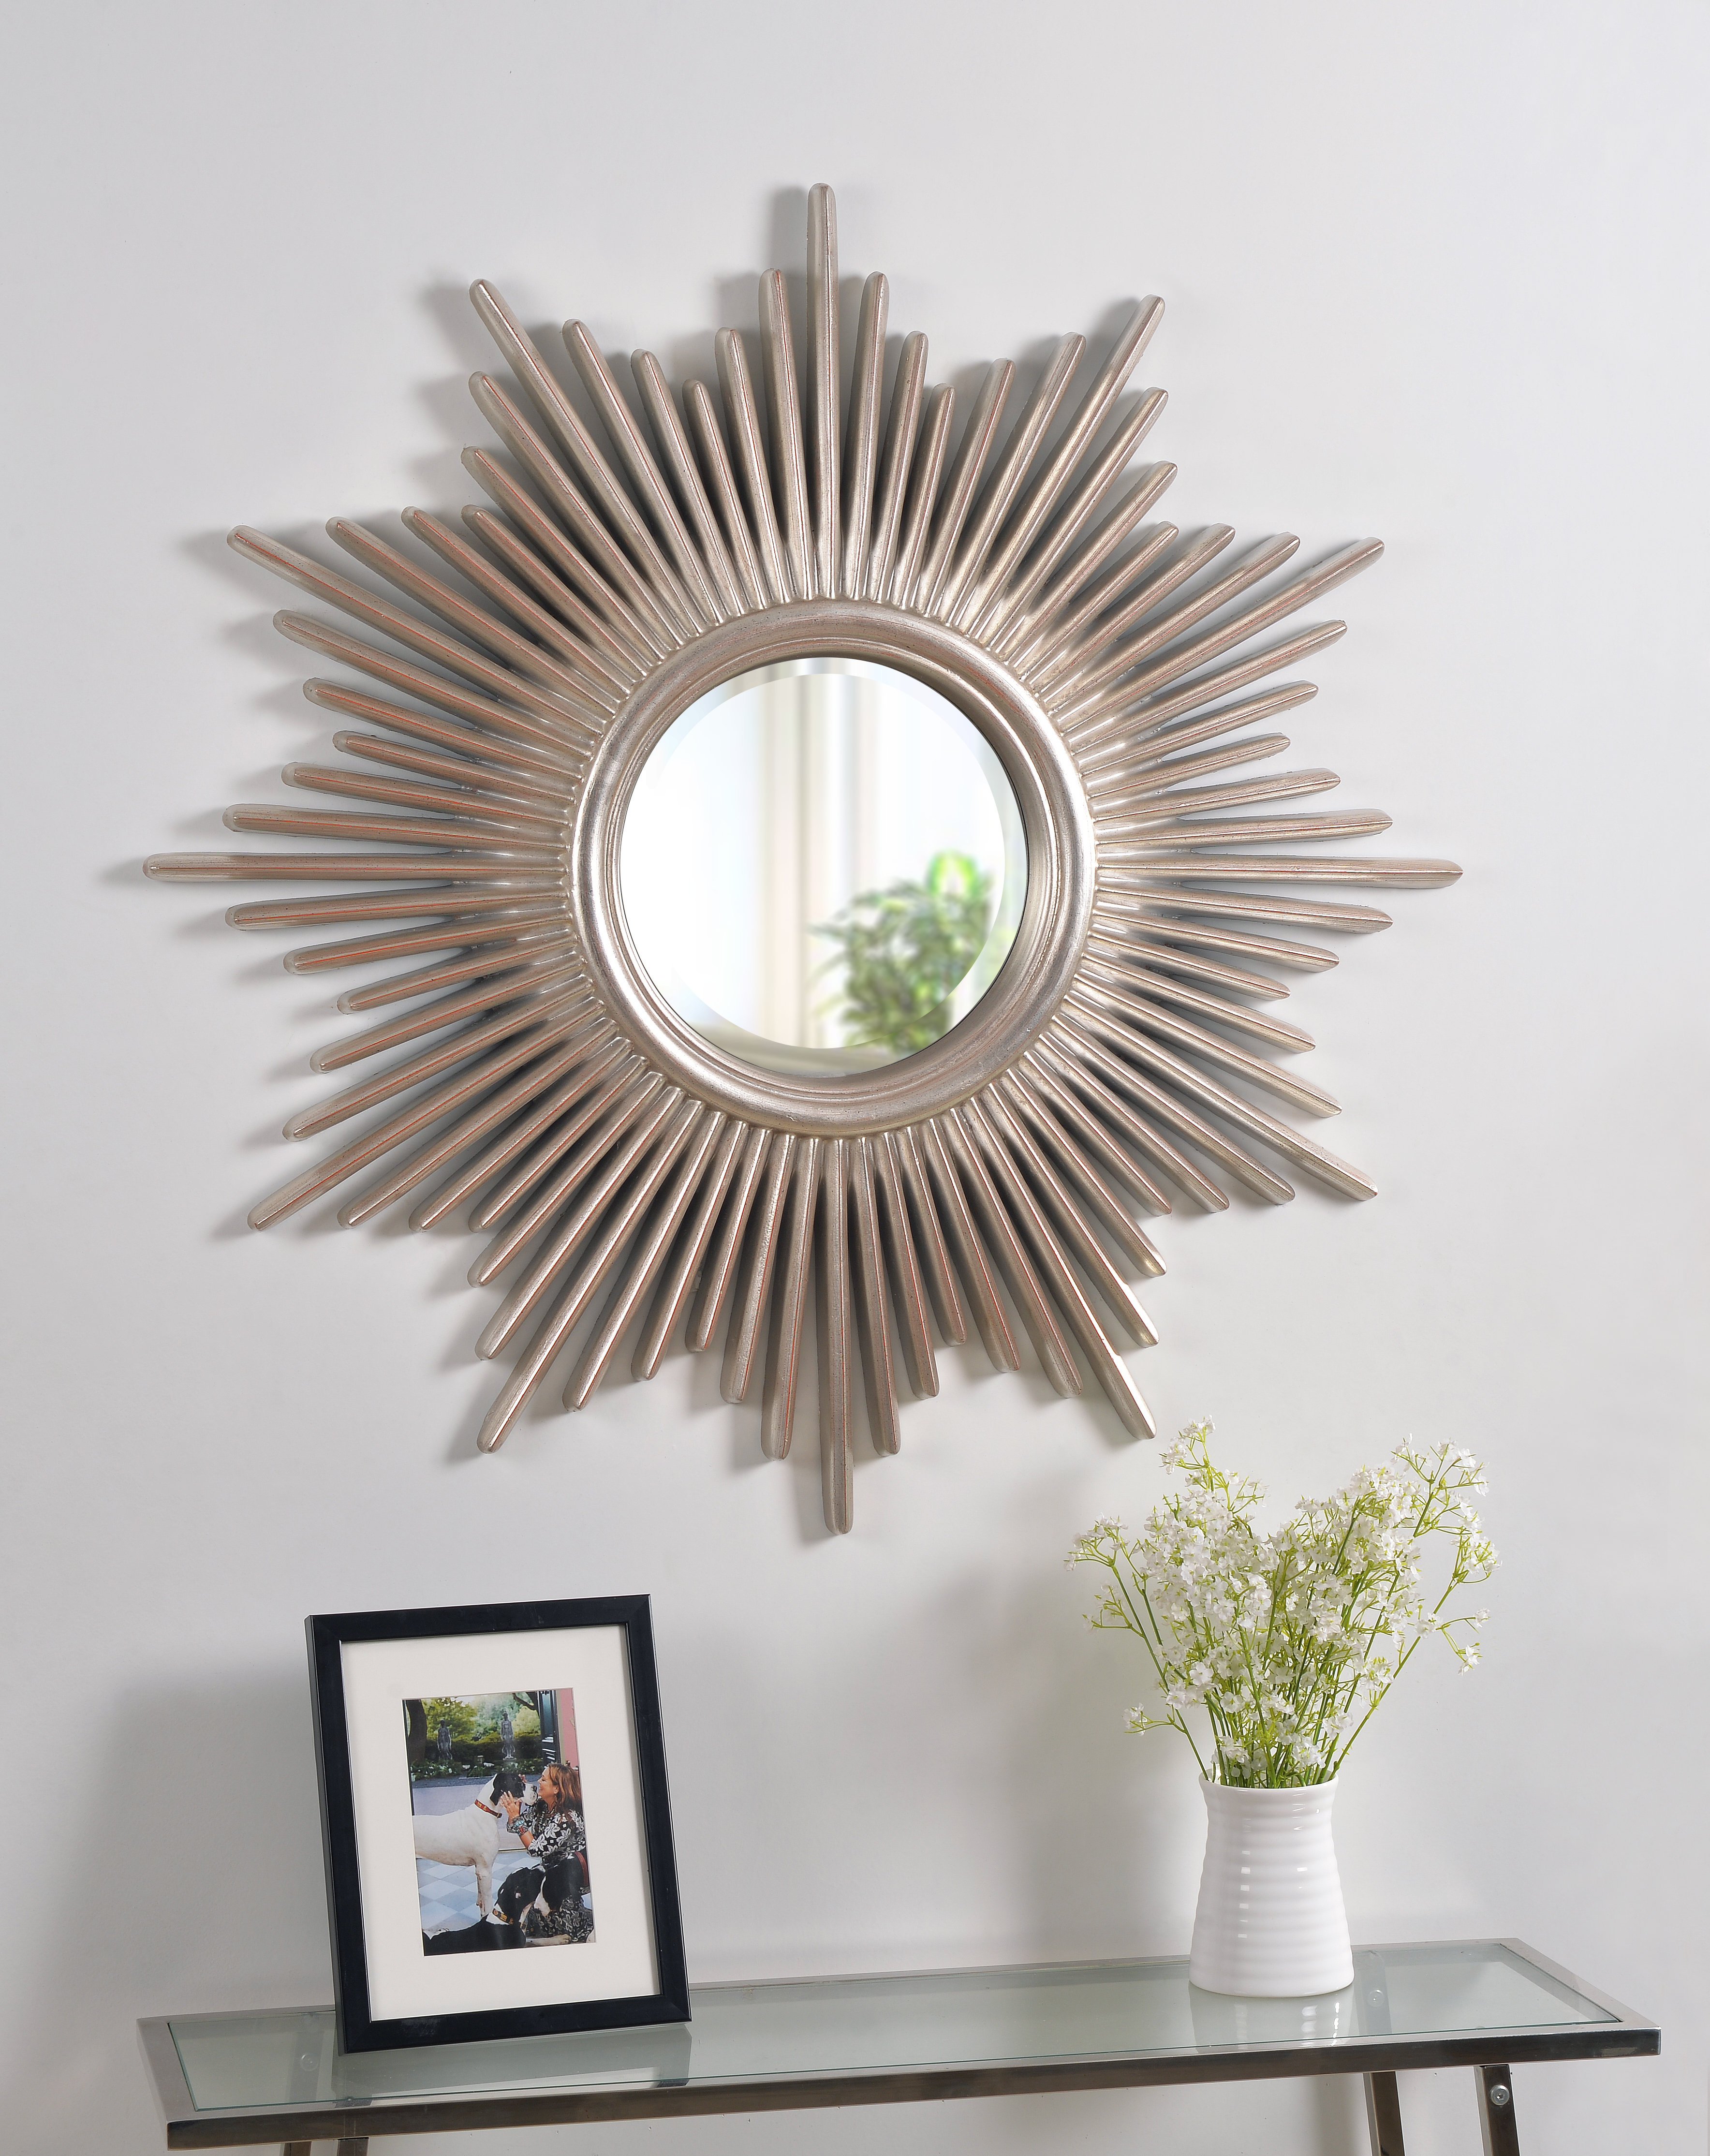 Josephson Accent Mirror With Regard To Bem Decorative Wall Mirrors (View 9 of 30)